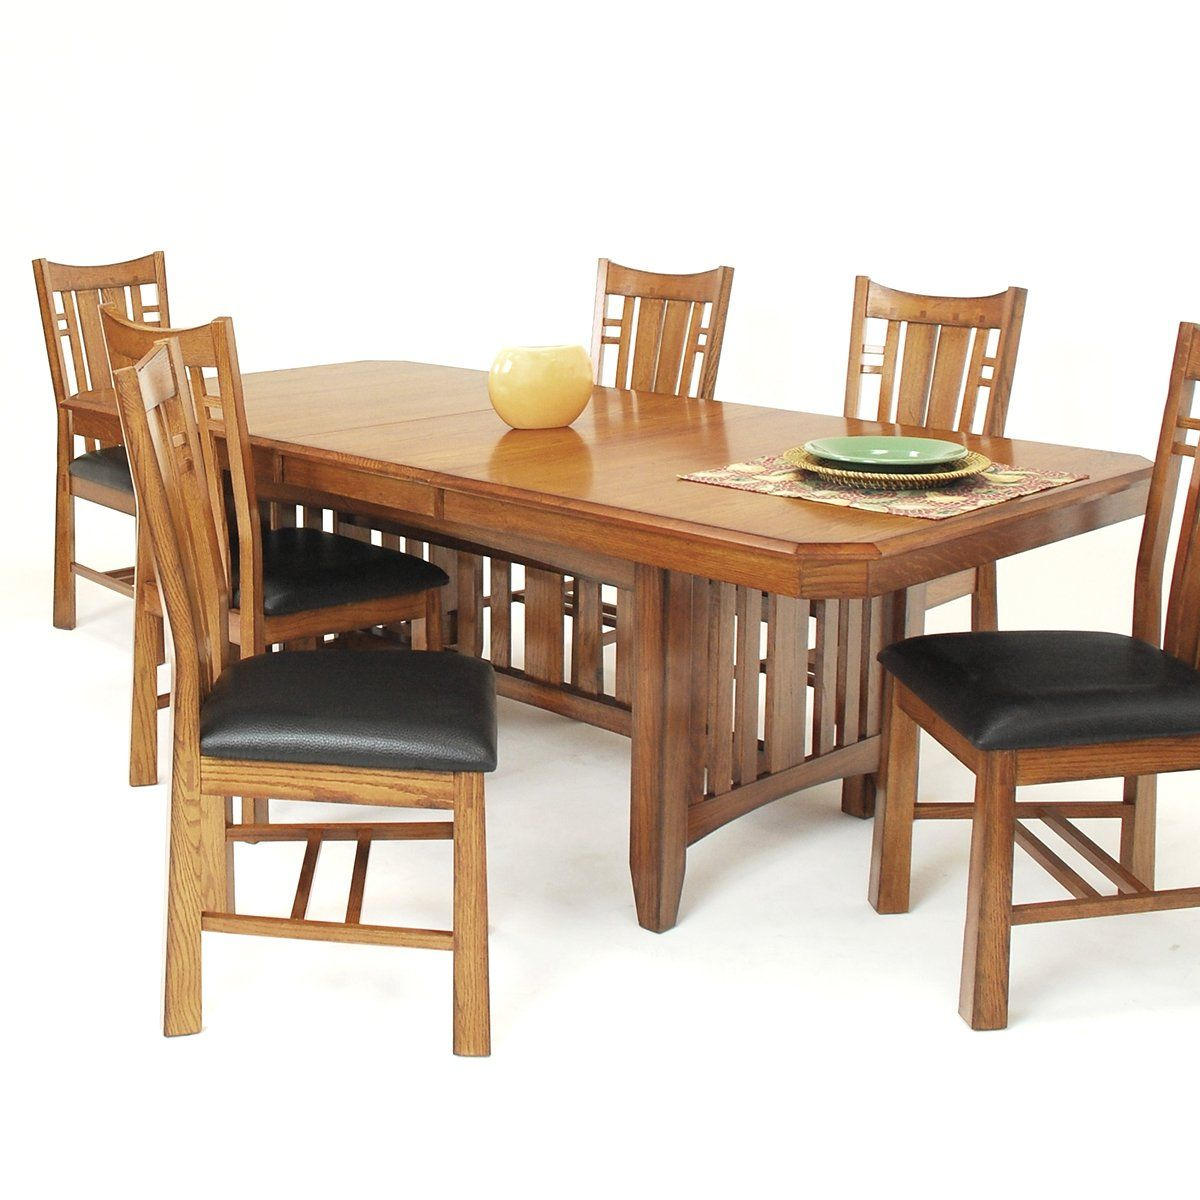 Gs Furniture Pasadena Solid Oak Top Trestle Table Dining Set With